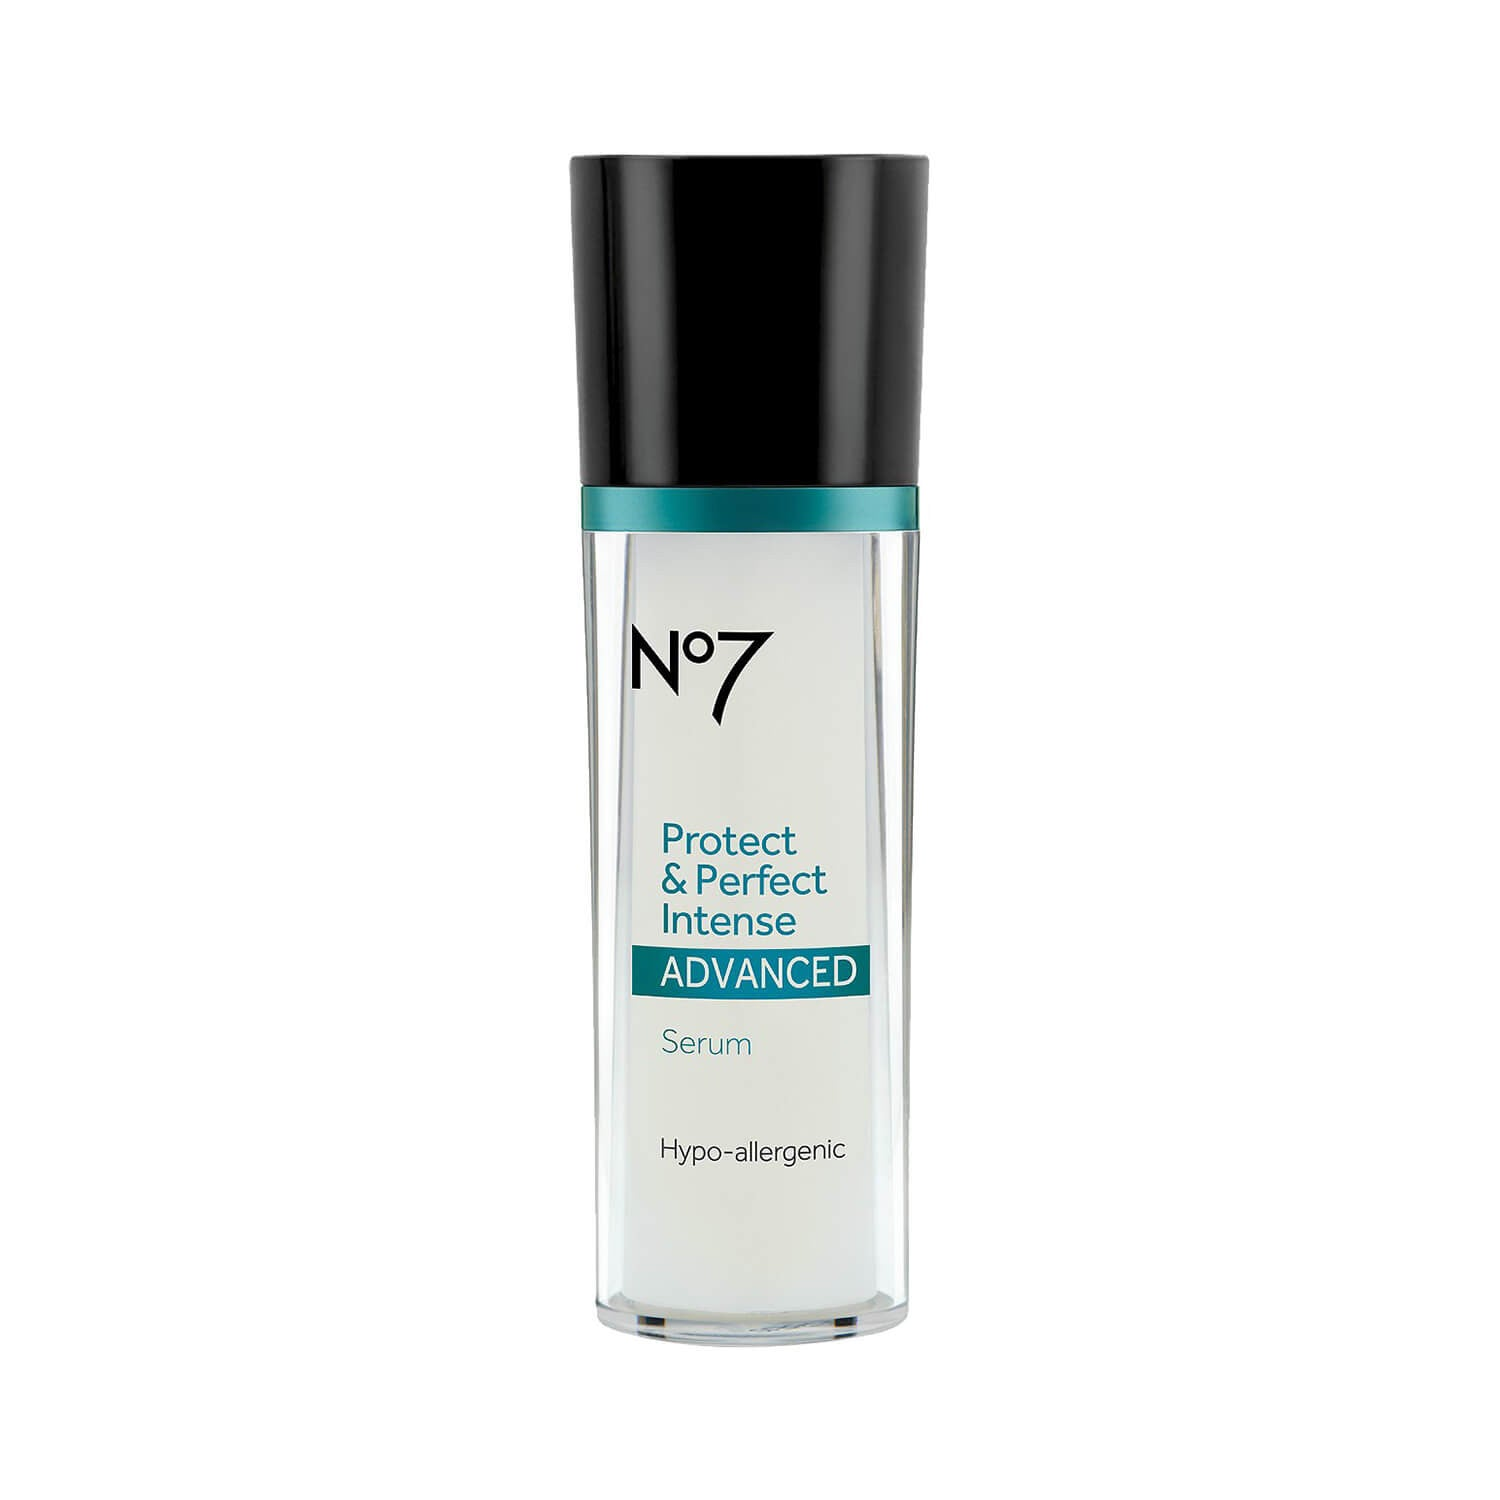 Boots No7 Protect  Perfect Intense Advanced Anti Aging Serum Bottle 30ml